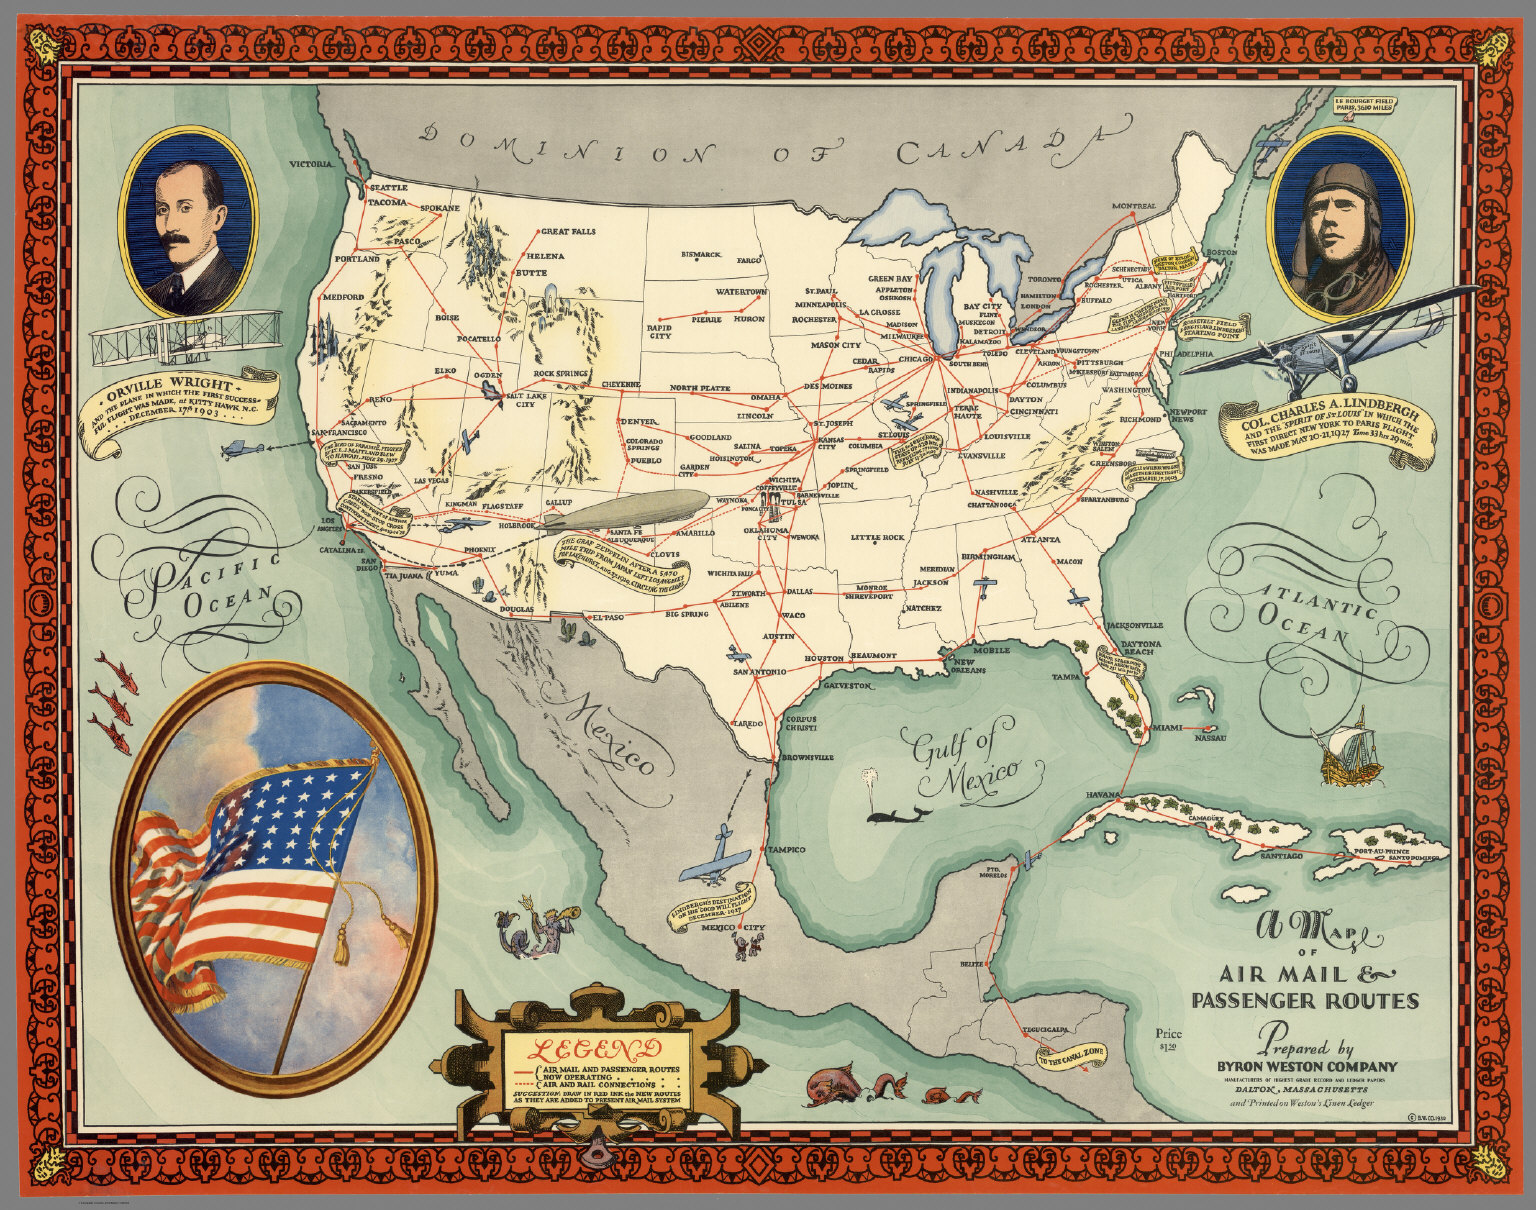 A Map of Air Mail & Passenger Routes in the United States.